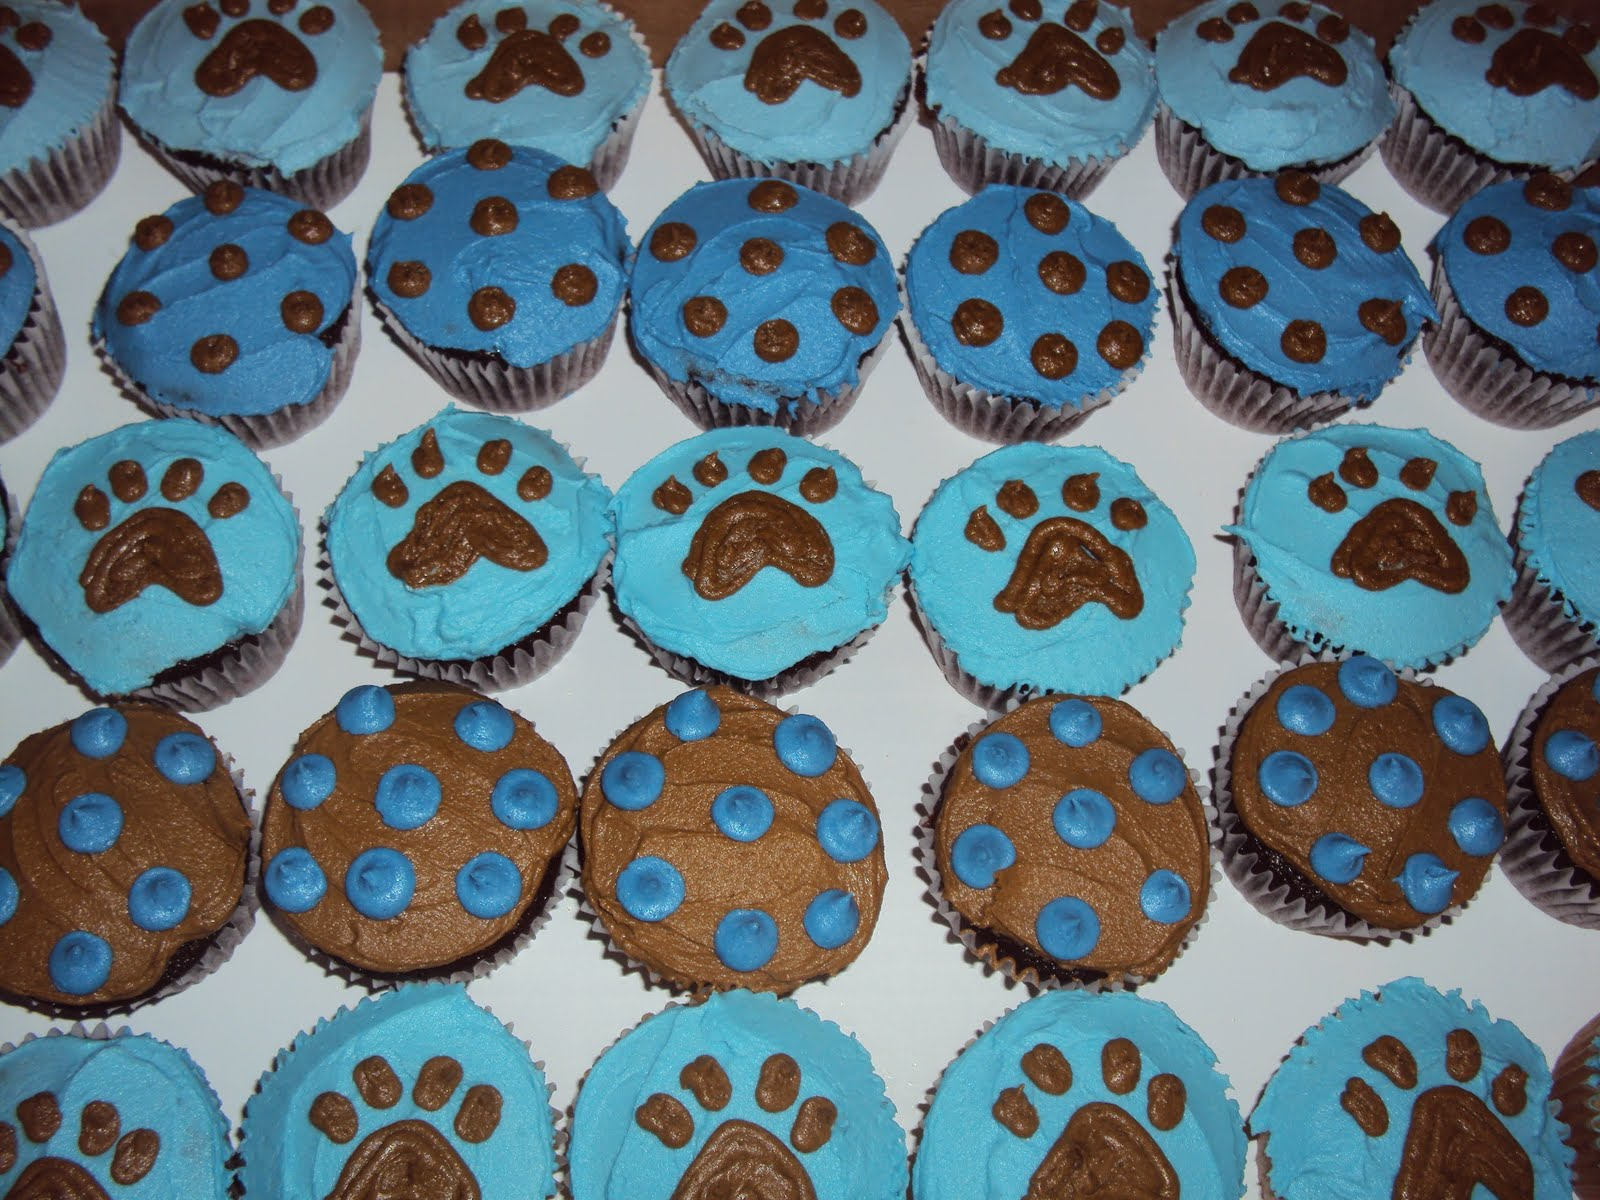 Icingonthecupcake2 Puppy Print Baby Shower